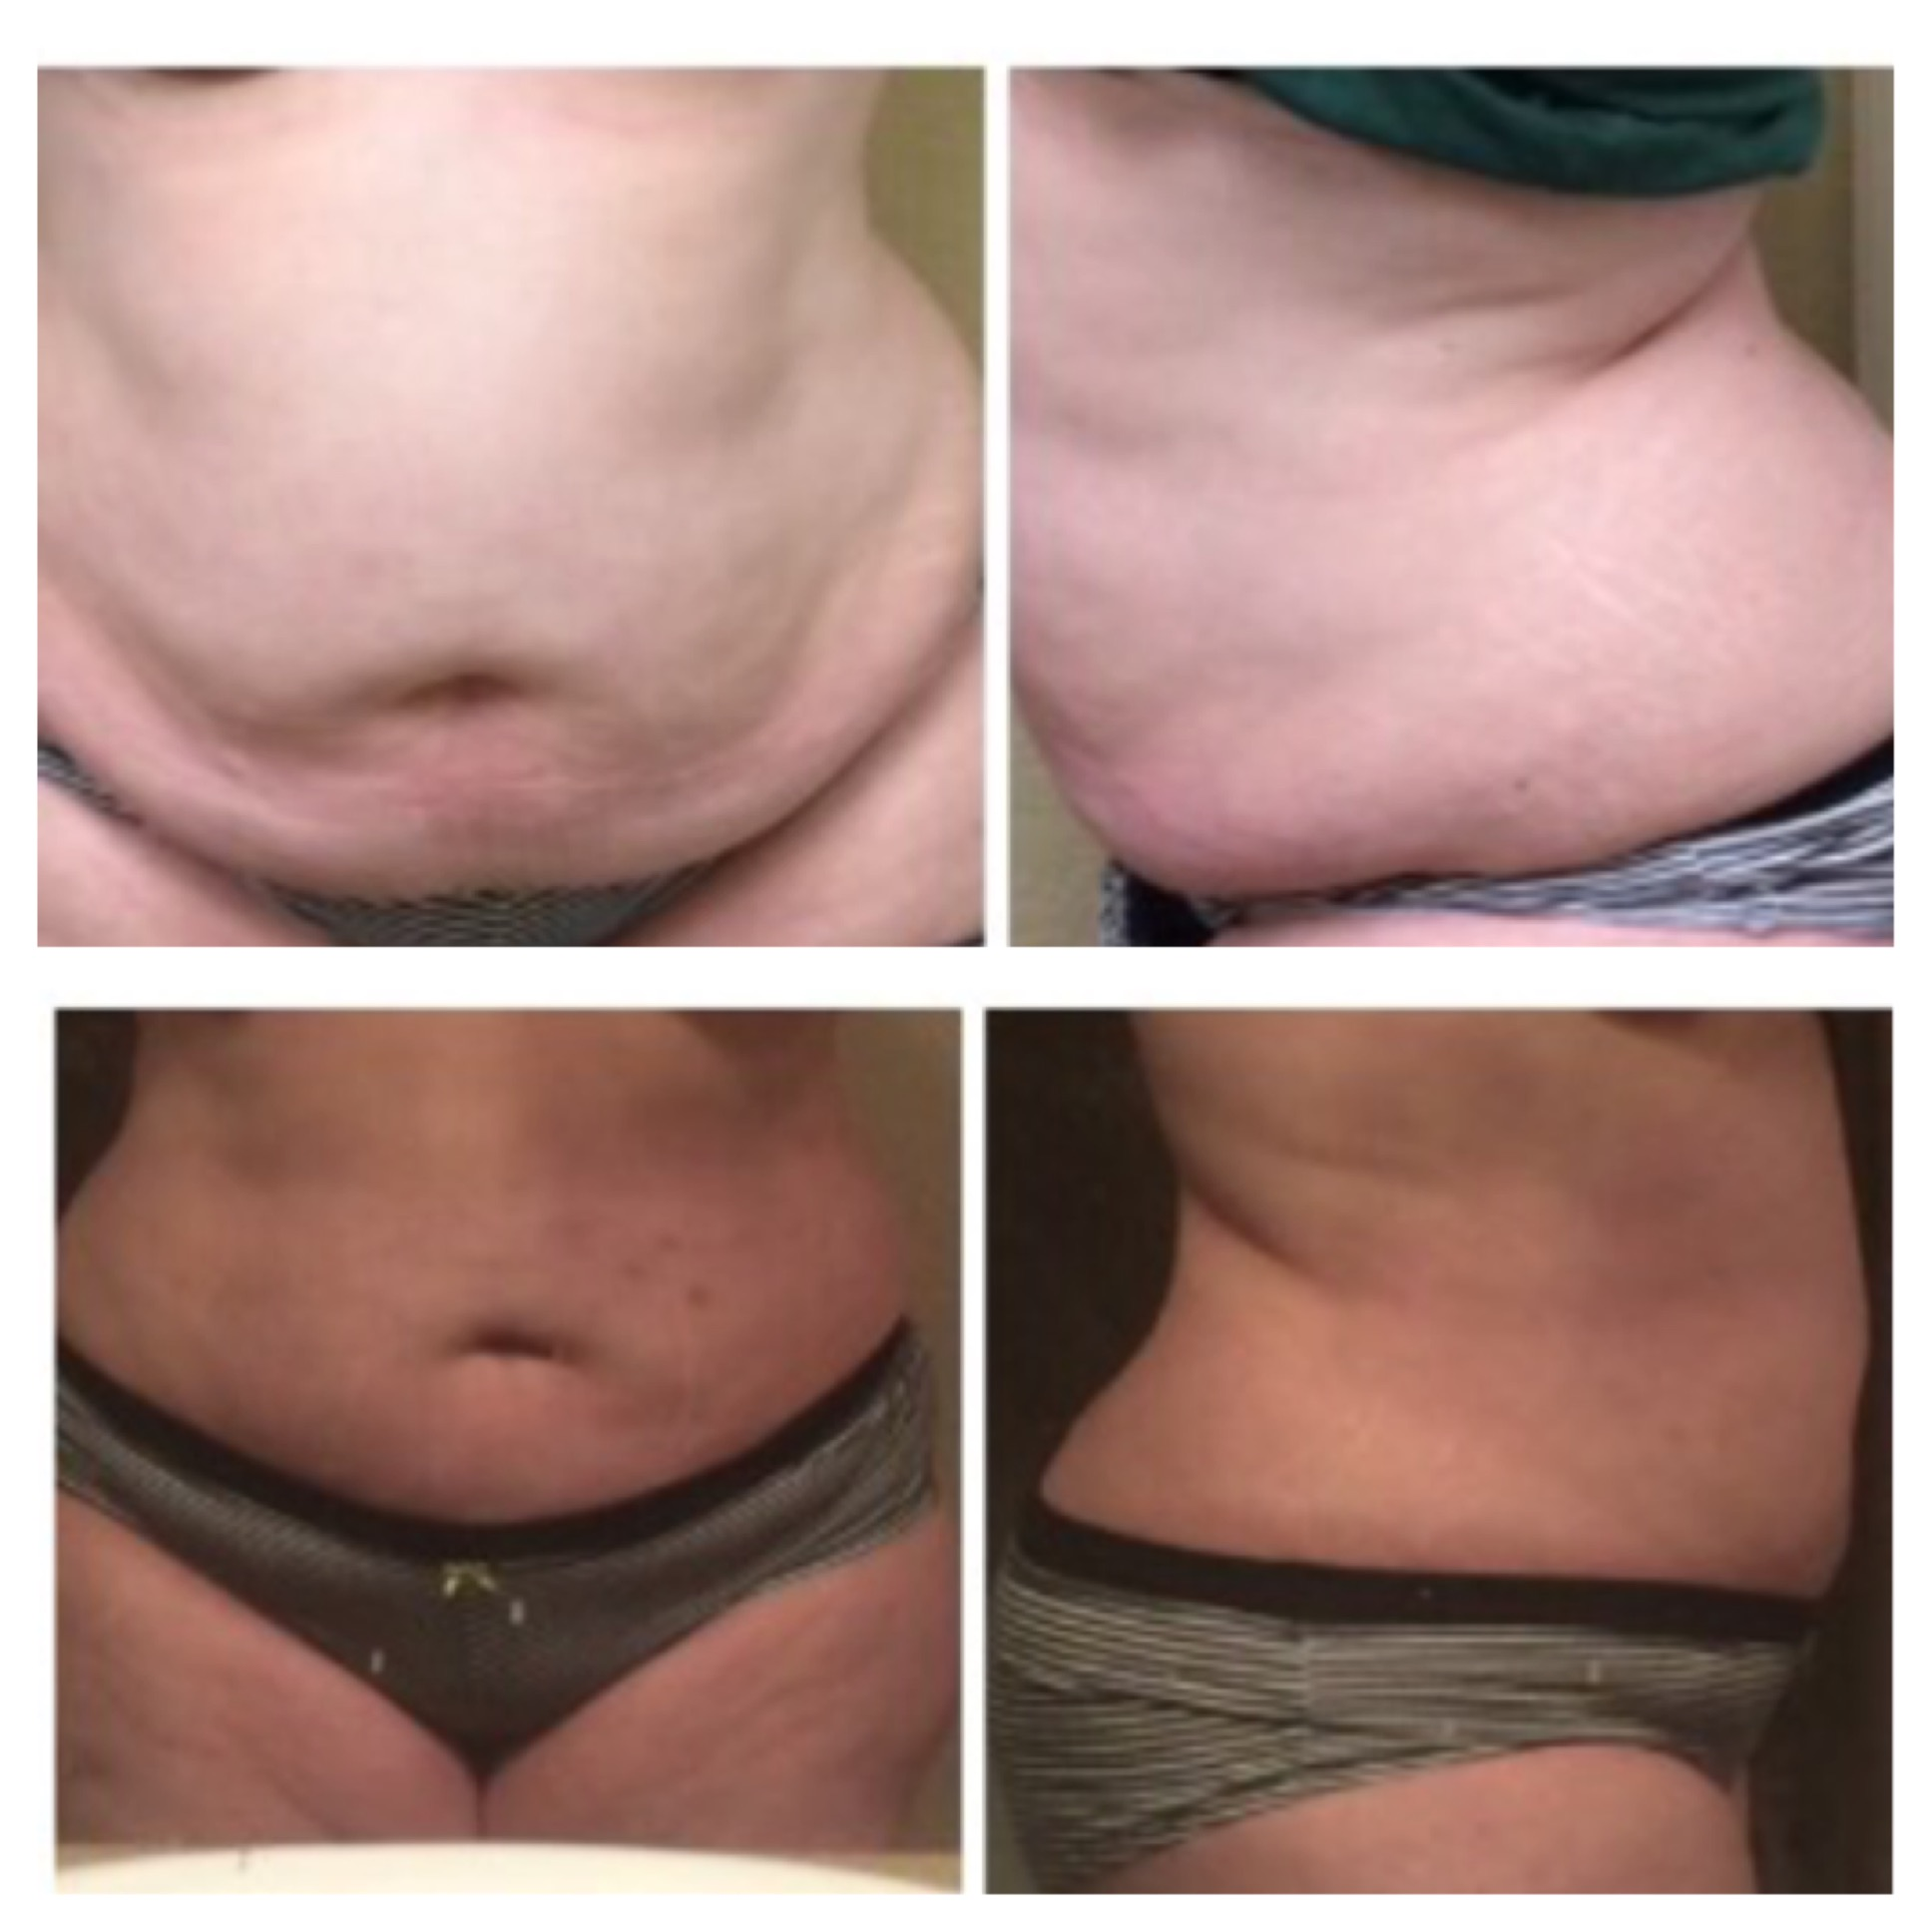 Fast Results That Last!   Real Client Pictures!   After 4 Treatments Twice a week for 2 weeks.